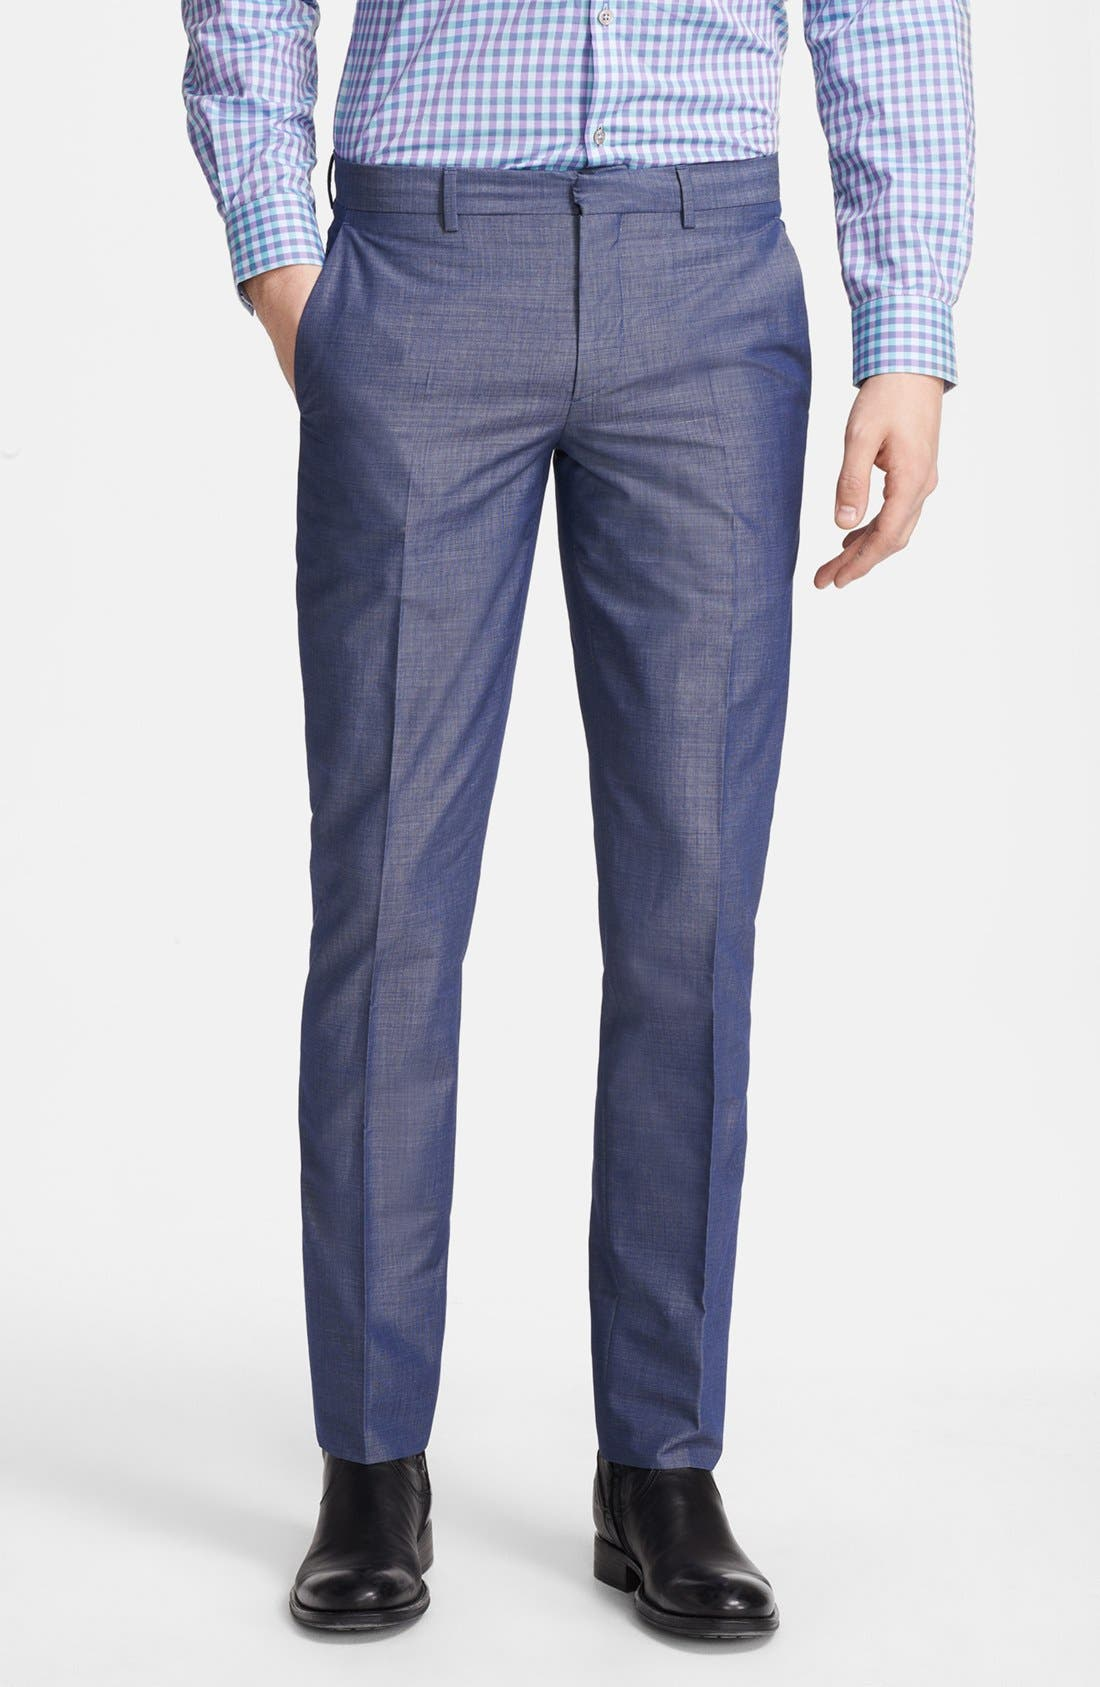 Alternate Image 1 Selected - PS Paul Smith Slim Fit Textured Pants